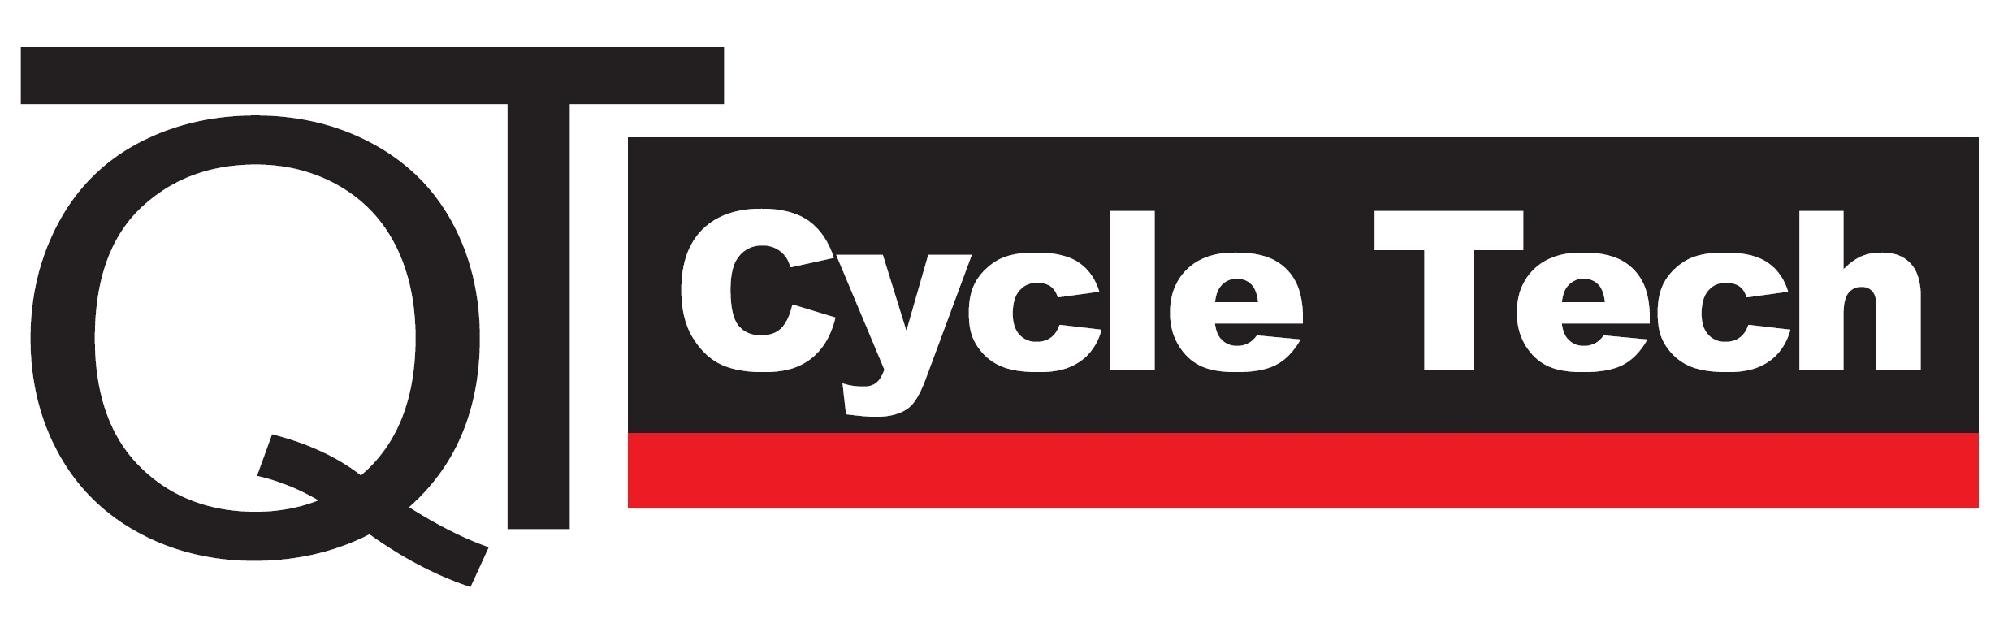 qt-cycle-tech-logo.jpg